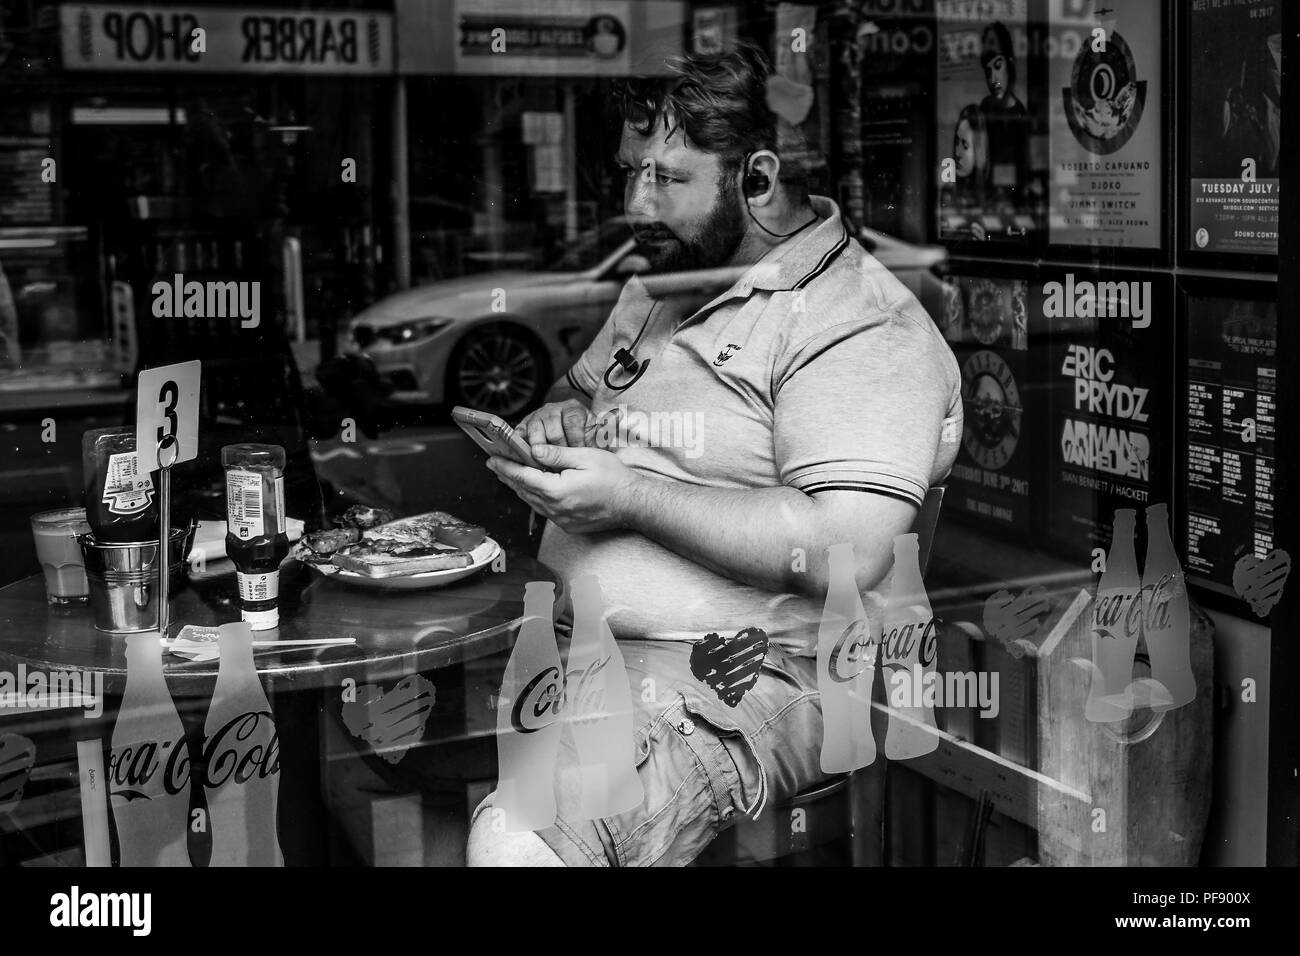 Man Eats Breakfast Whilst Using Phone In Manchester City Centre, England, UK - Stock Image